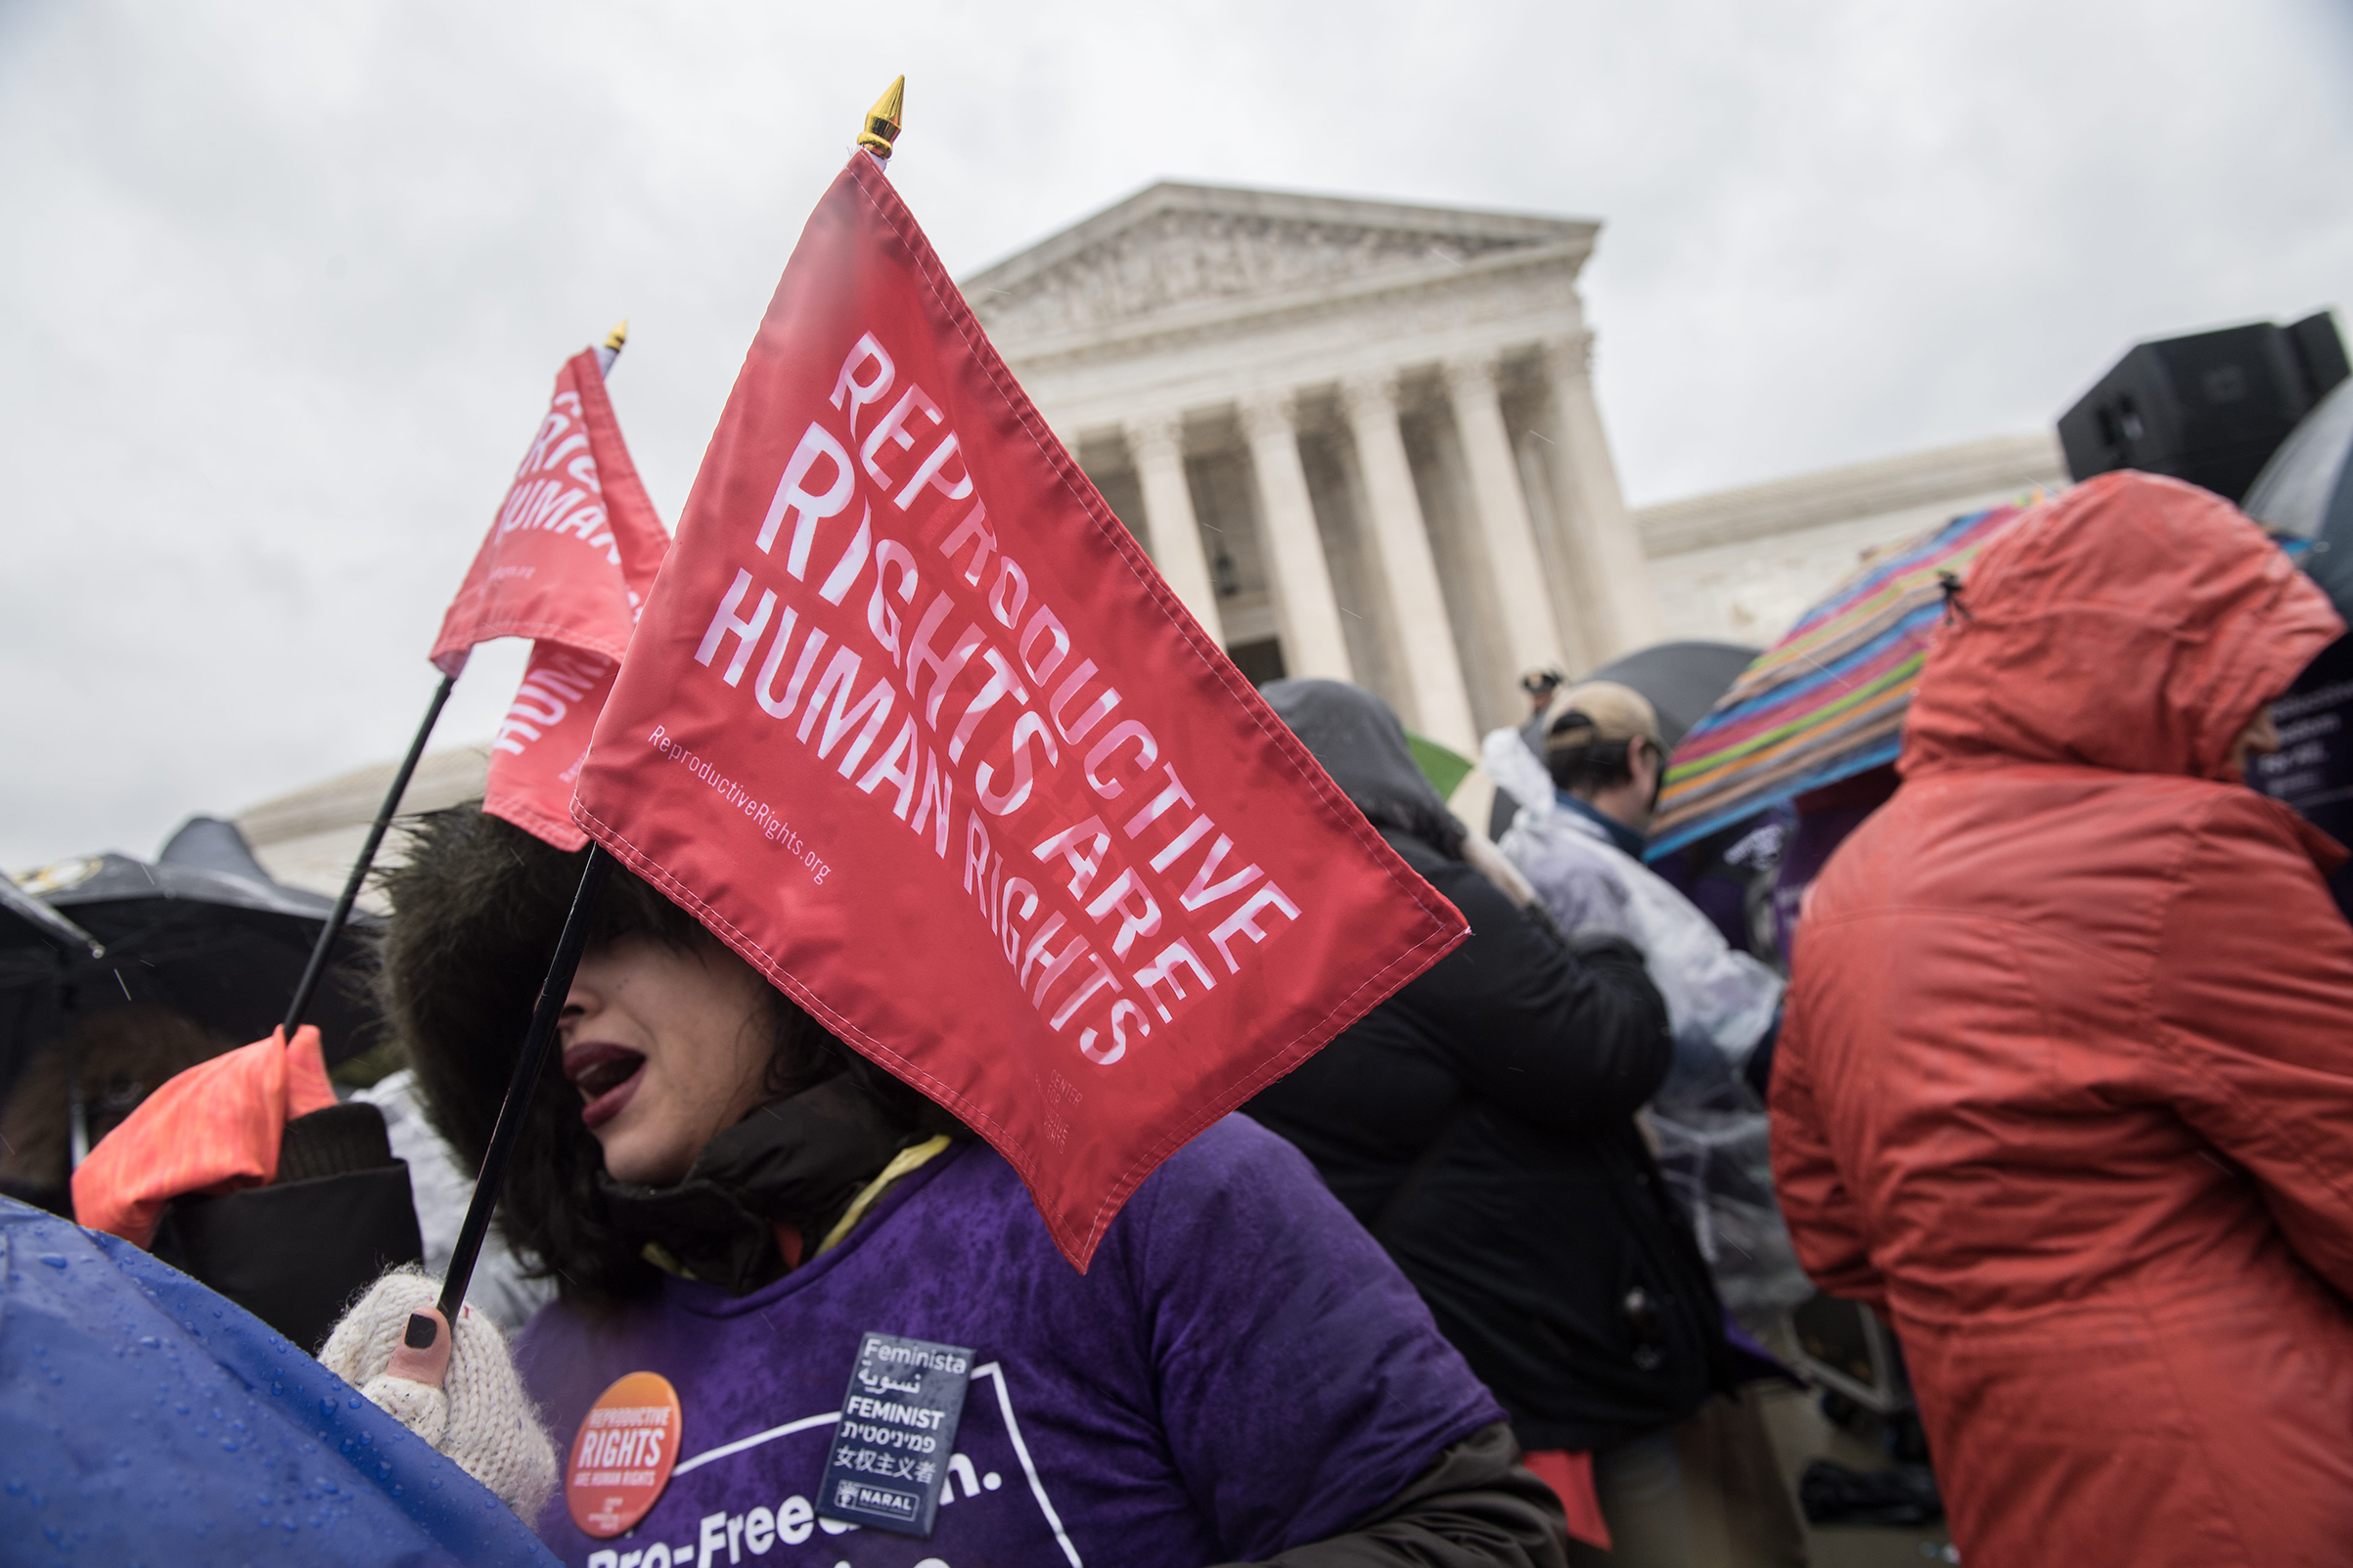 Pro-choice activists demonstrate in front of the Supreme Court in Washington, on March 20, 2018.